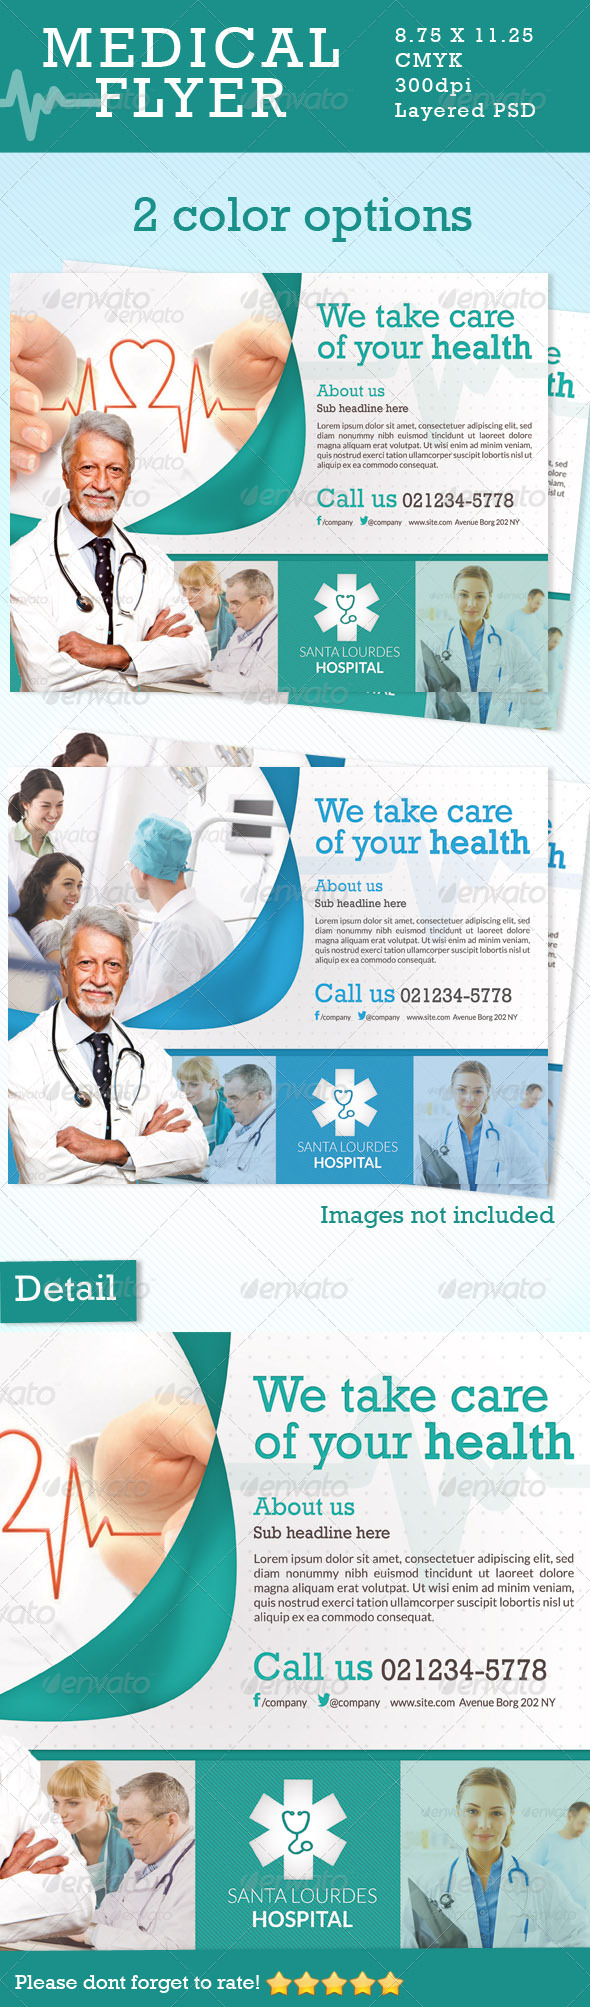 GraphicRiver Medical Flyer in 2 Colors 5051220